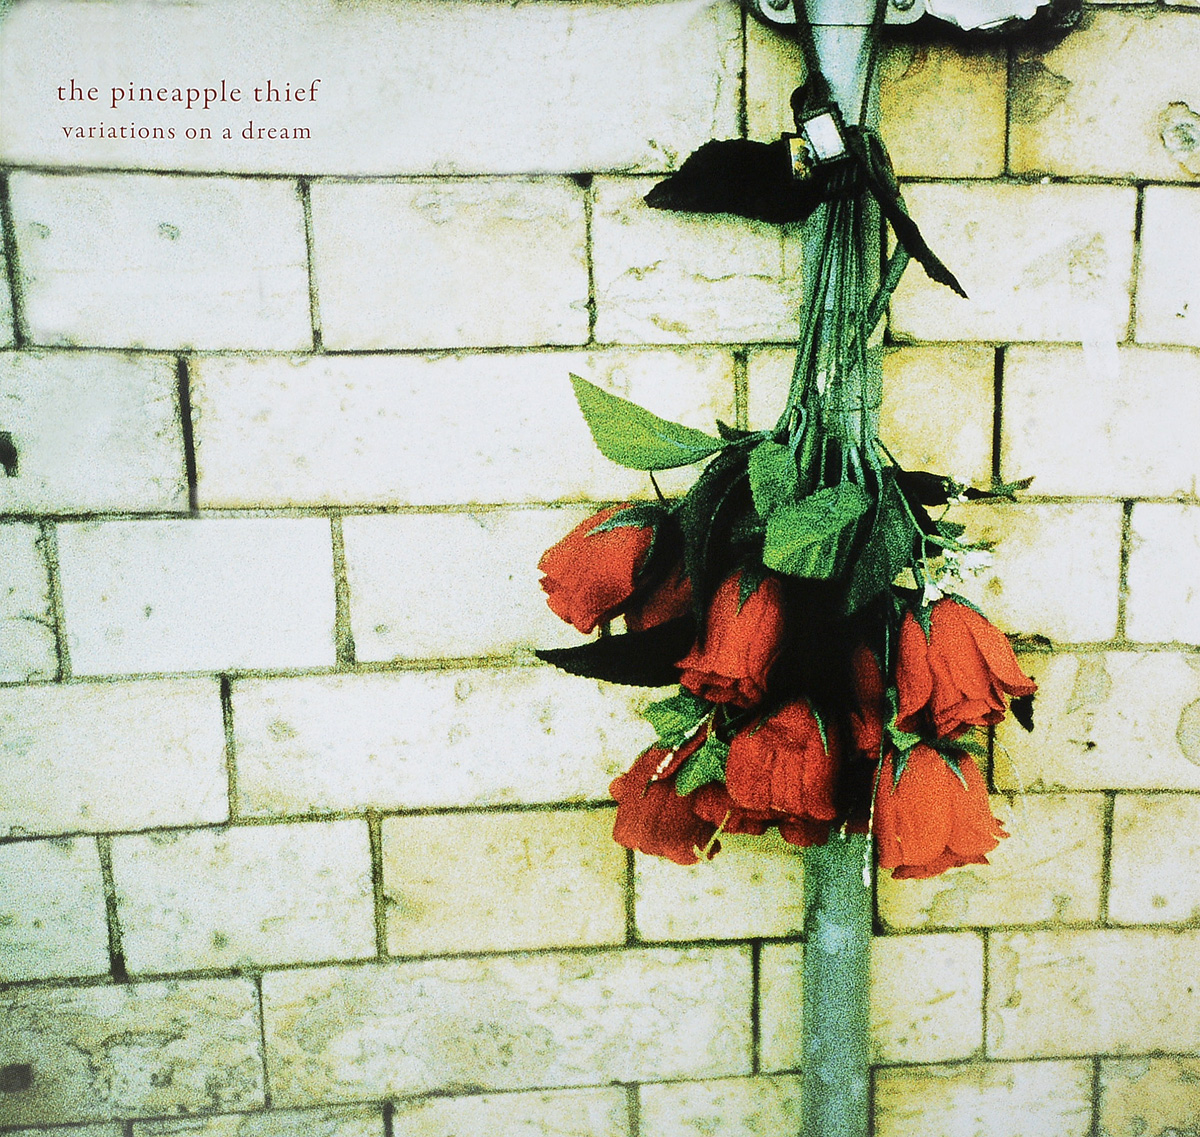 The Pineapple Thief Thief. Variations On A Dream (2 LP)